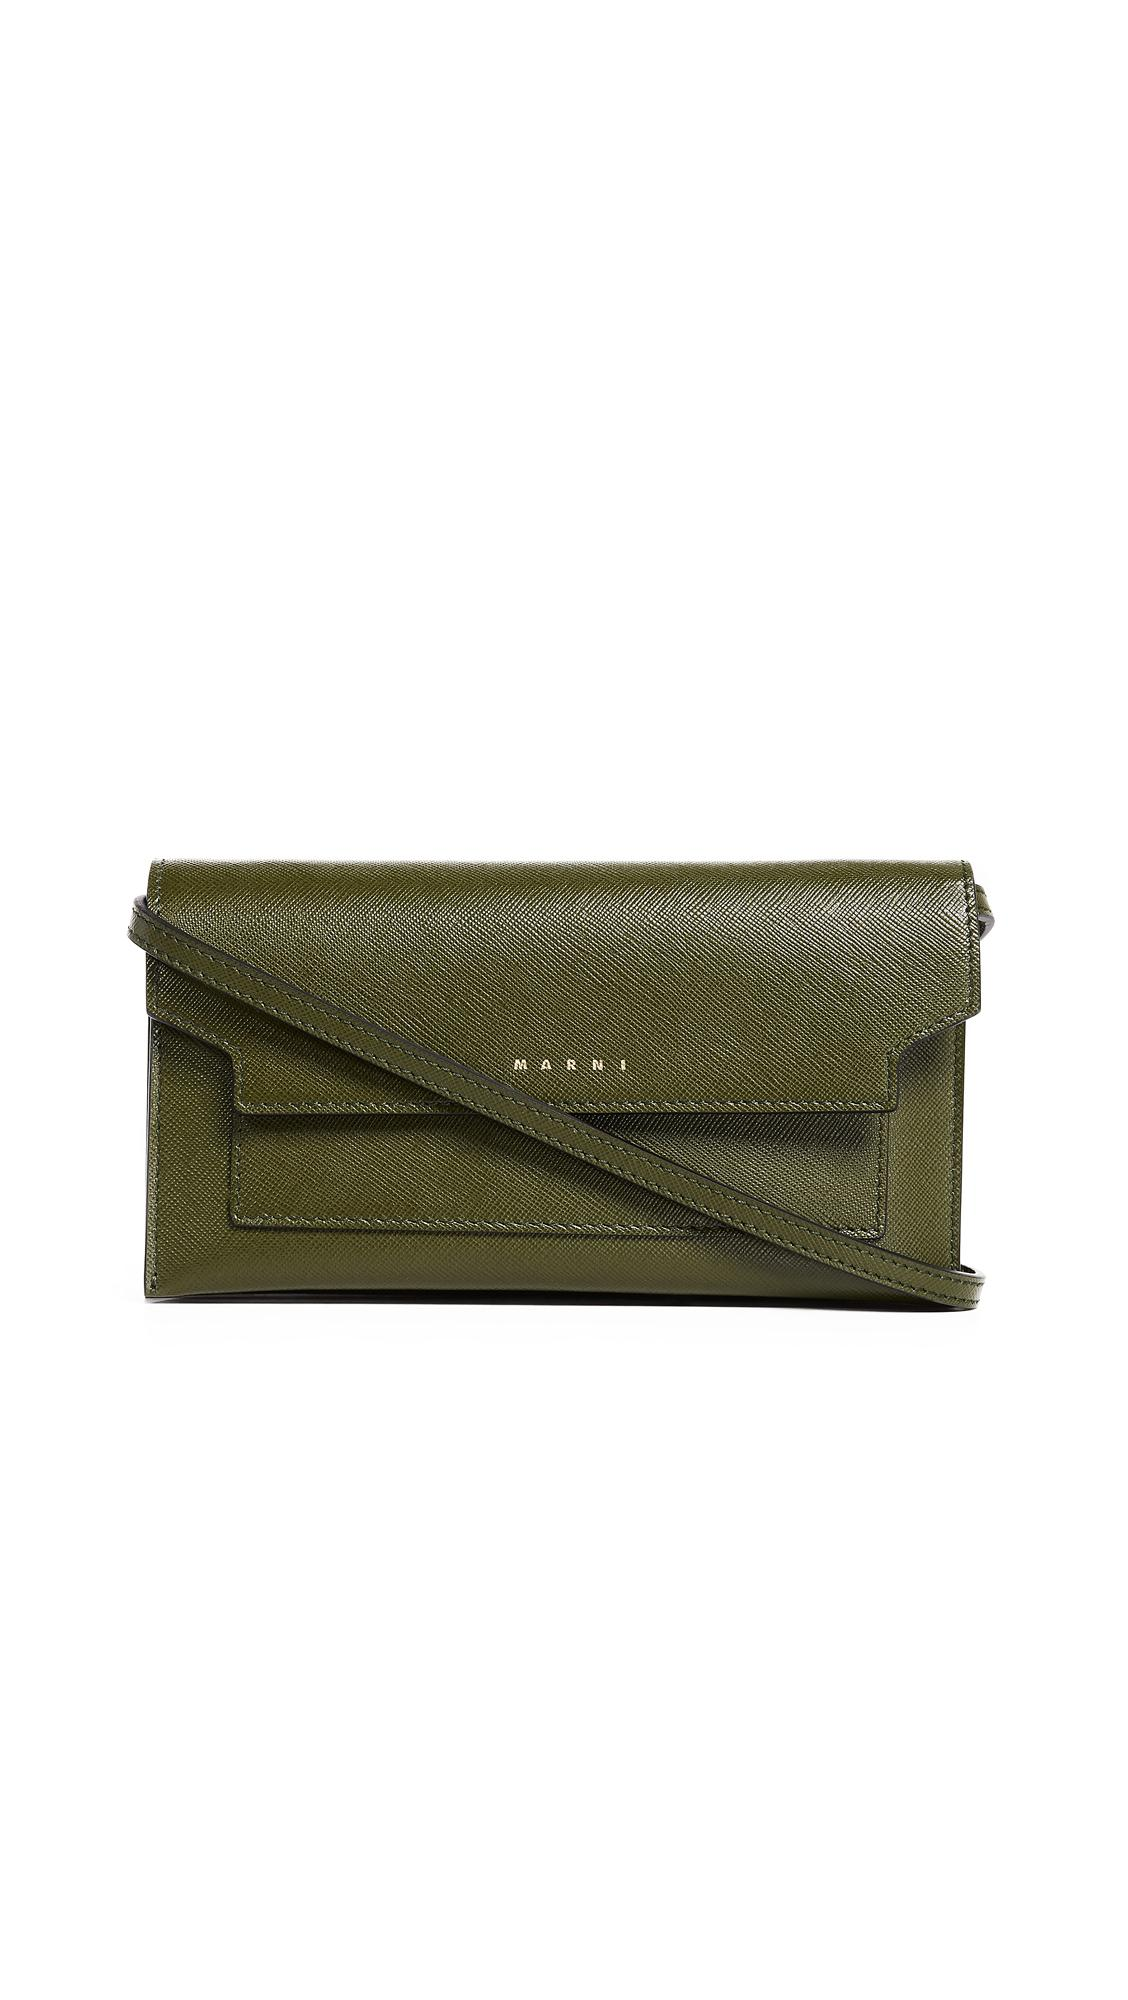 Marni Cross Body Wallet Bag In Olive Green/gold Brown